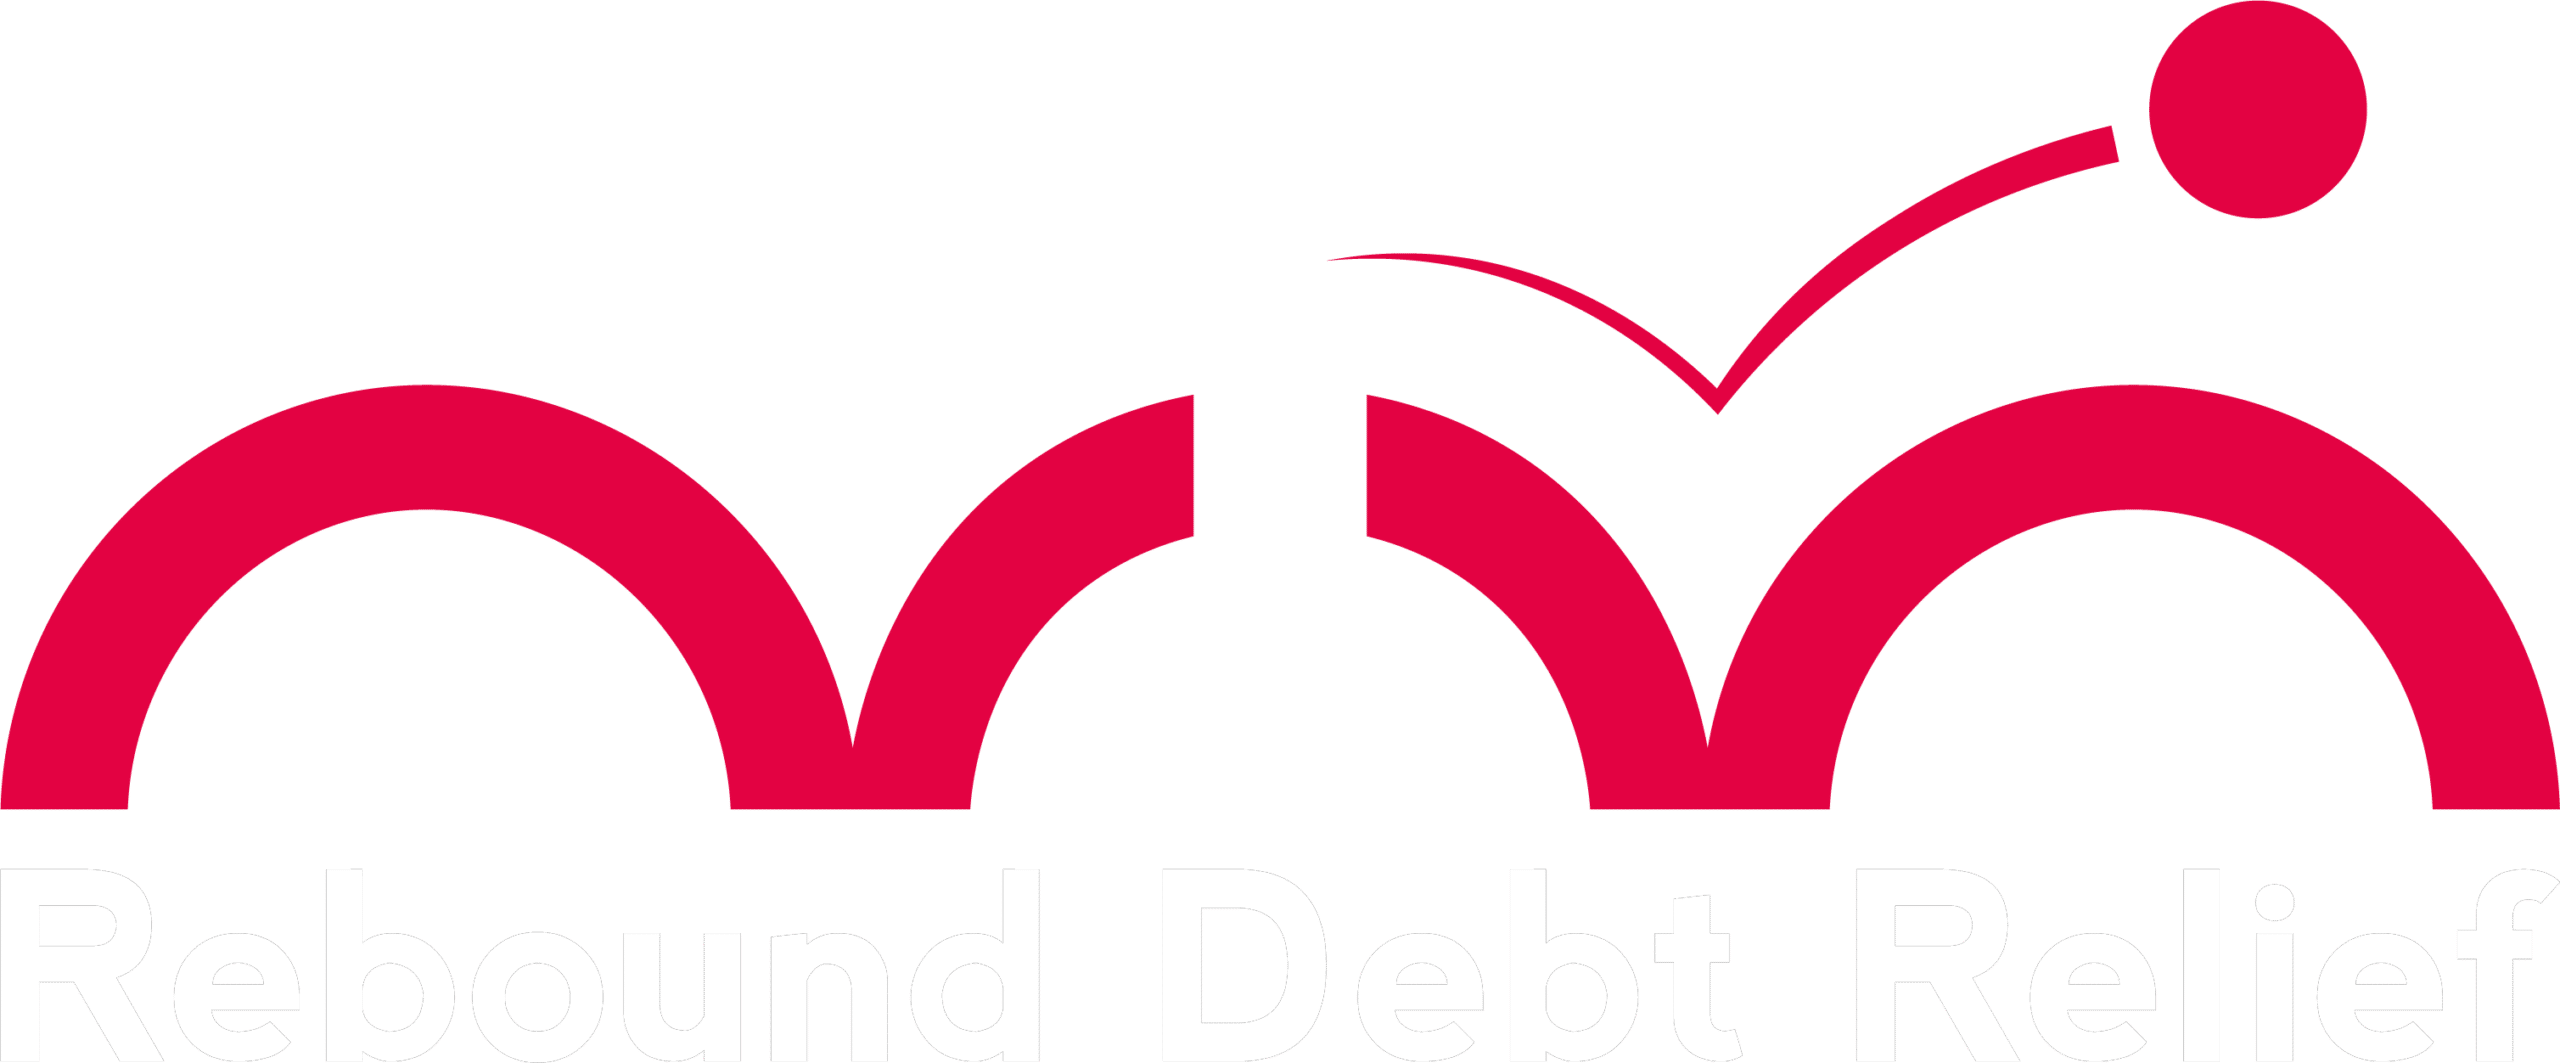 St Louis debt relief